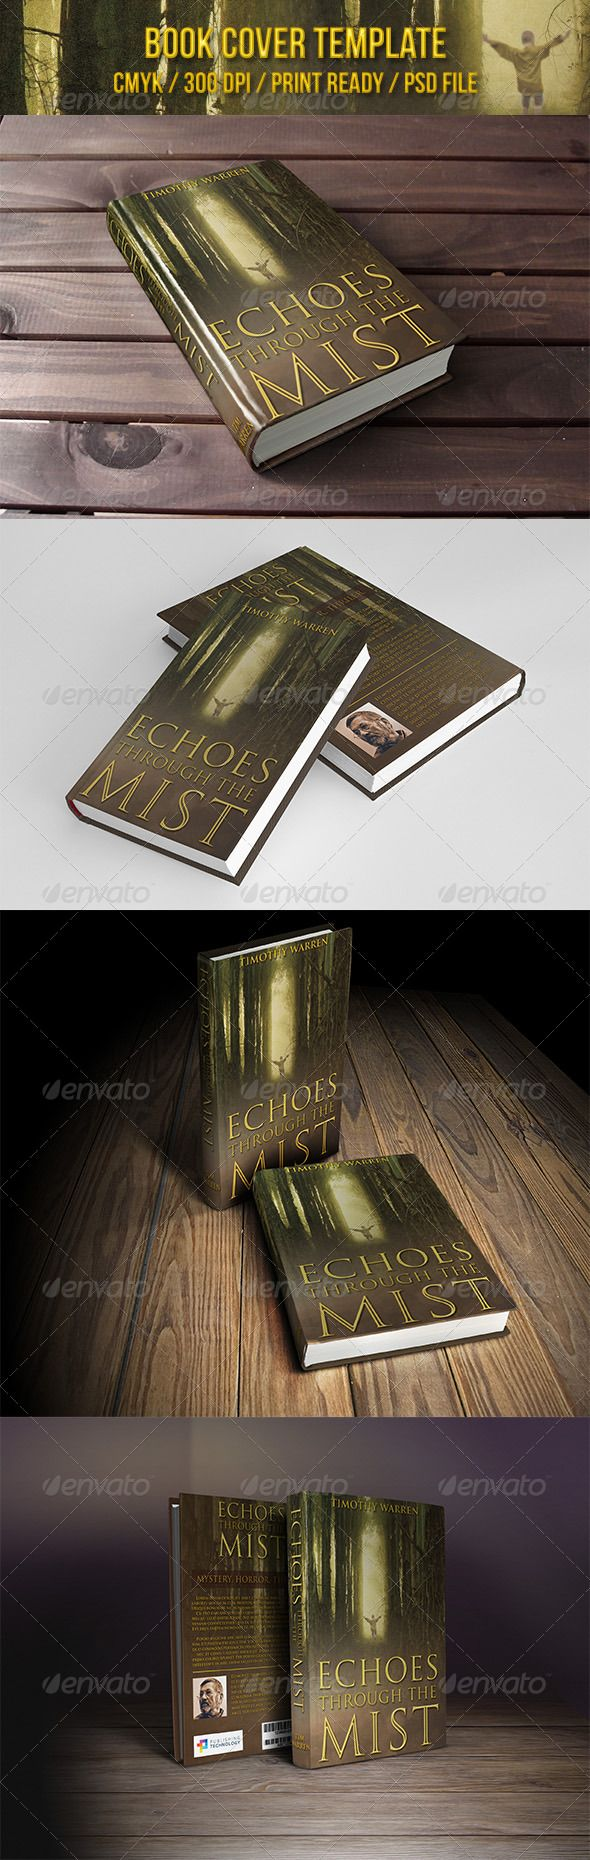 Poetry Book Cover Template Free : Best images about print templates on pinterest flyer